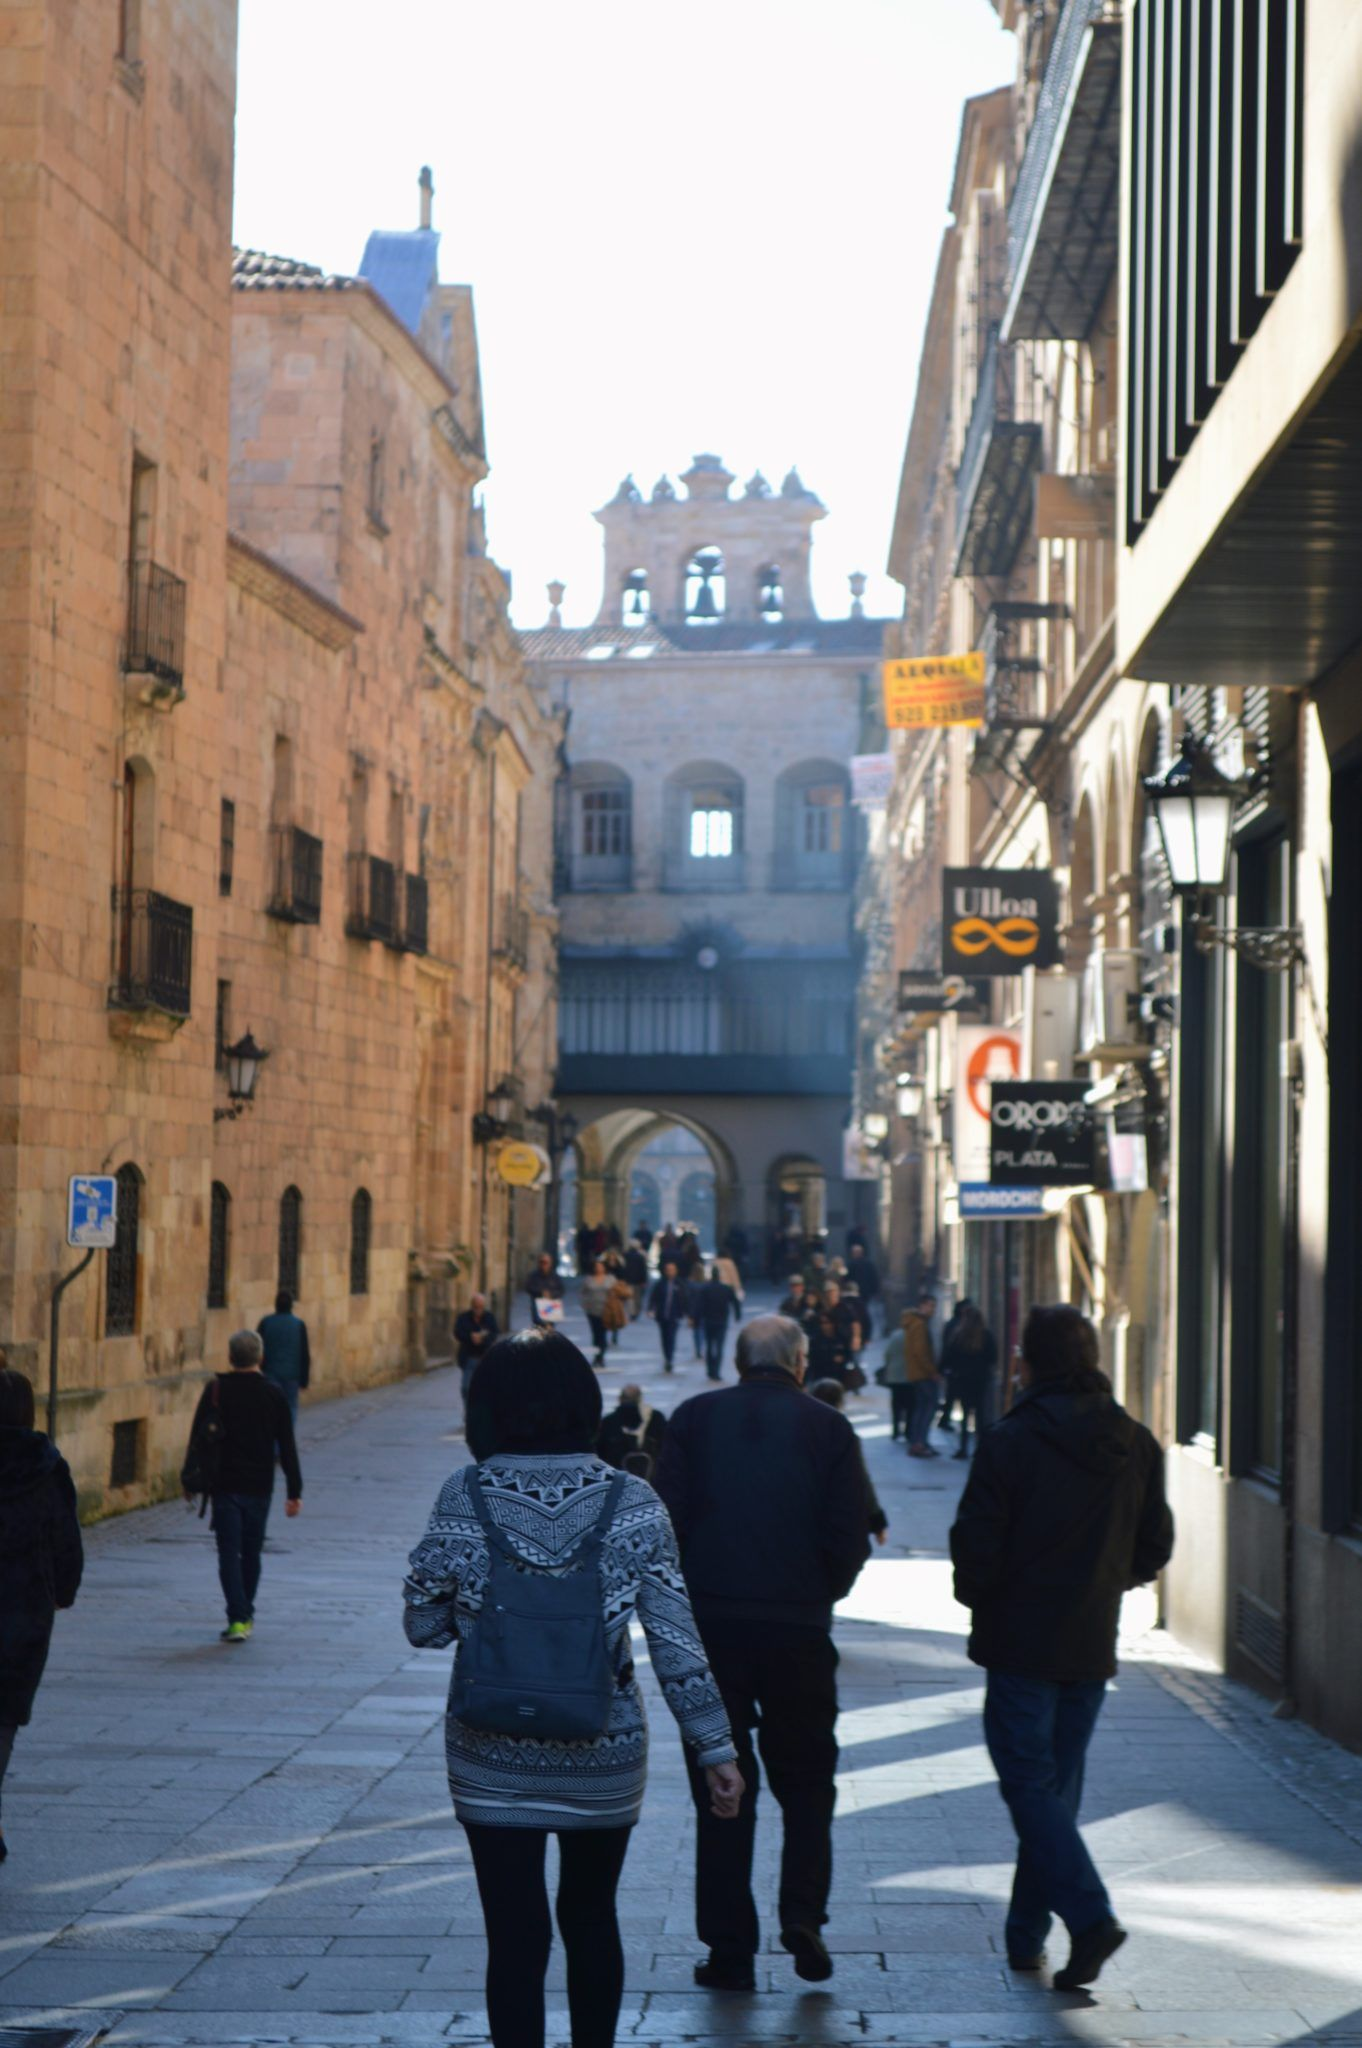 Salamanca - also known as Spain's Golden City